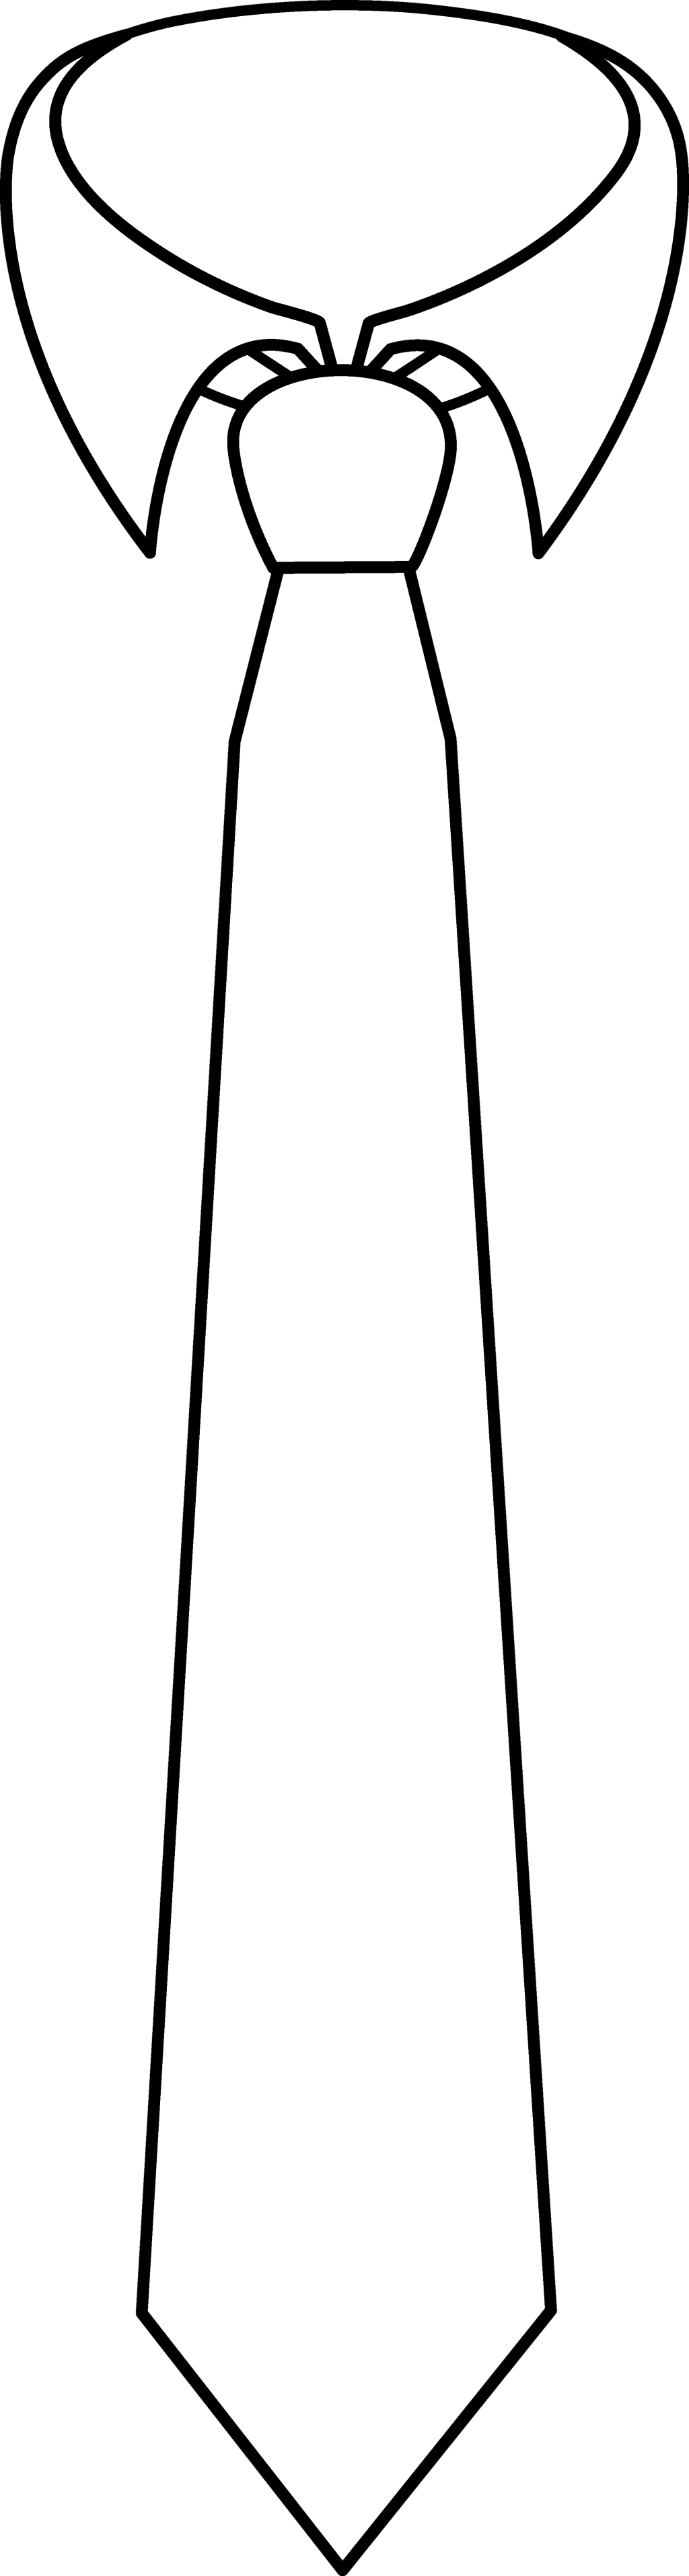 png stock Tie clipart black and white.  images of large